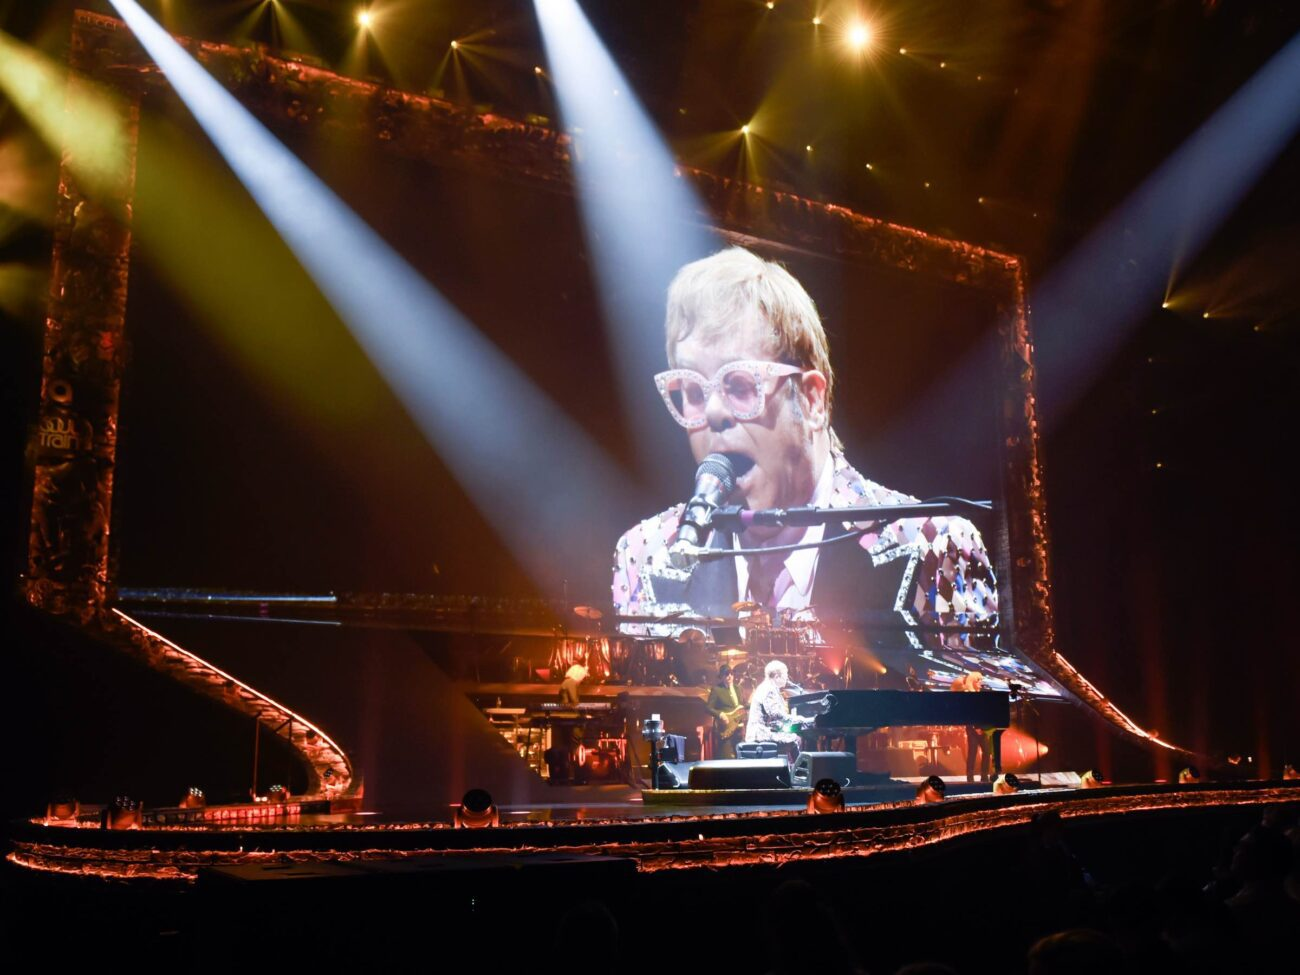 Elton John has been looking forward to getting on the road again. Open the story and discover the latest hiccup with his 'Farewell Yellow Brick Road' tour.